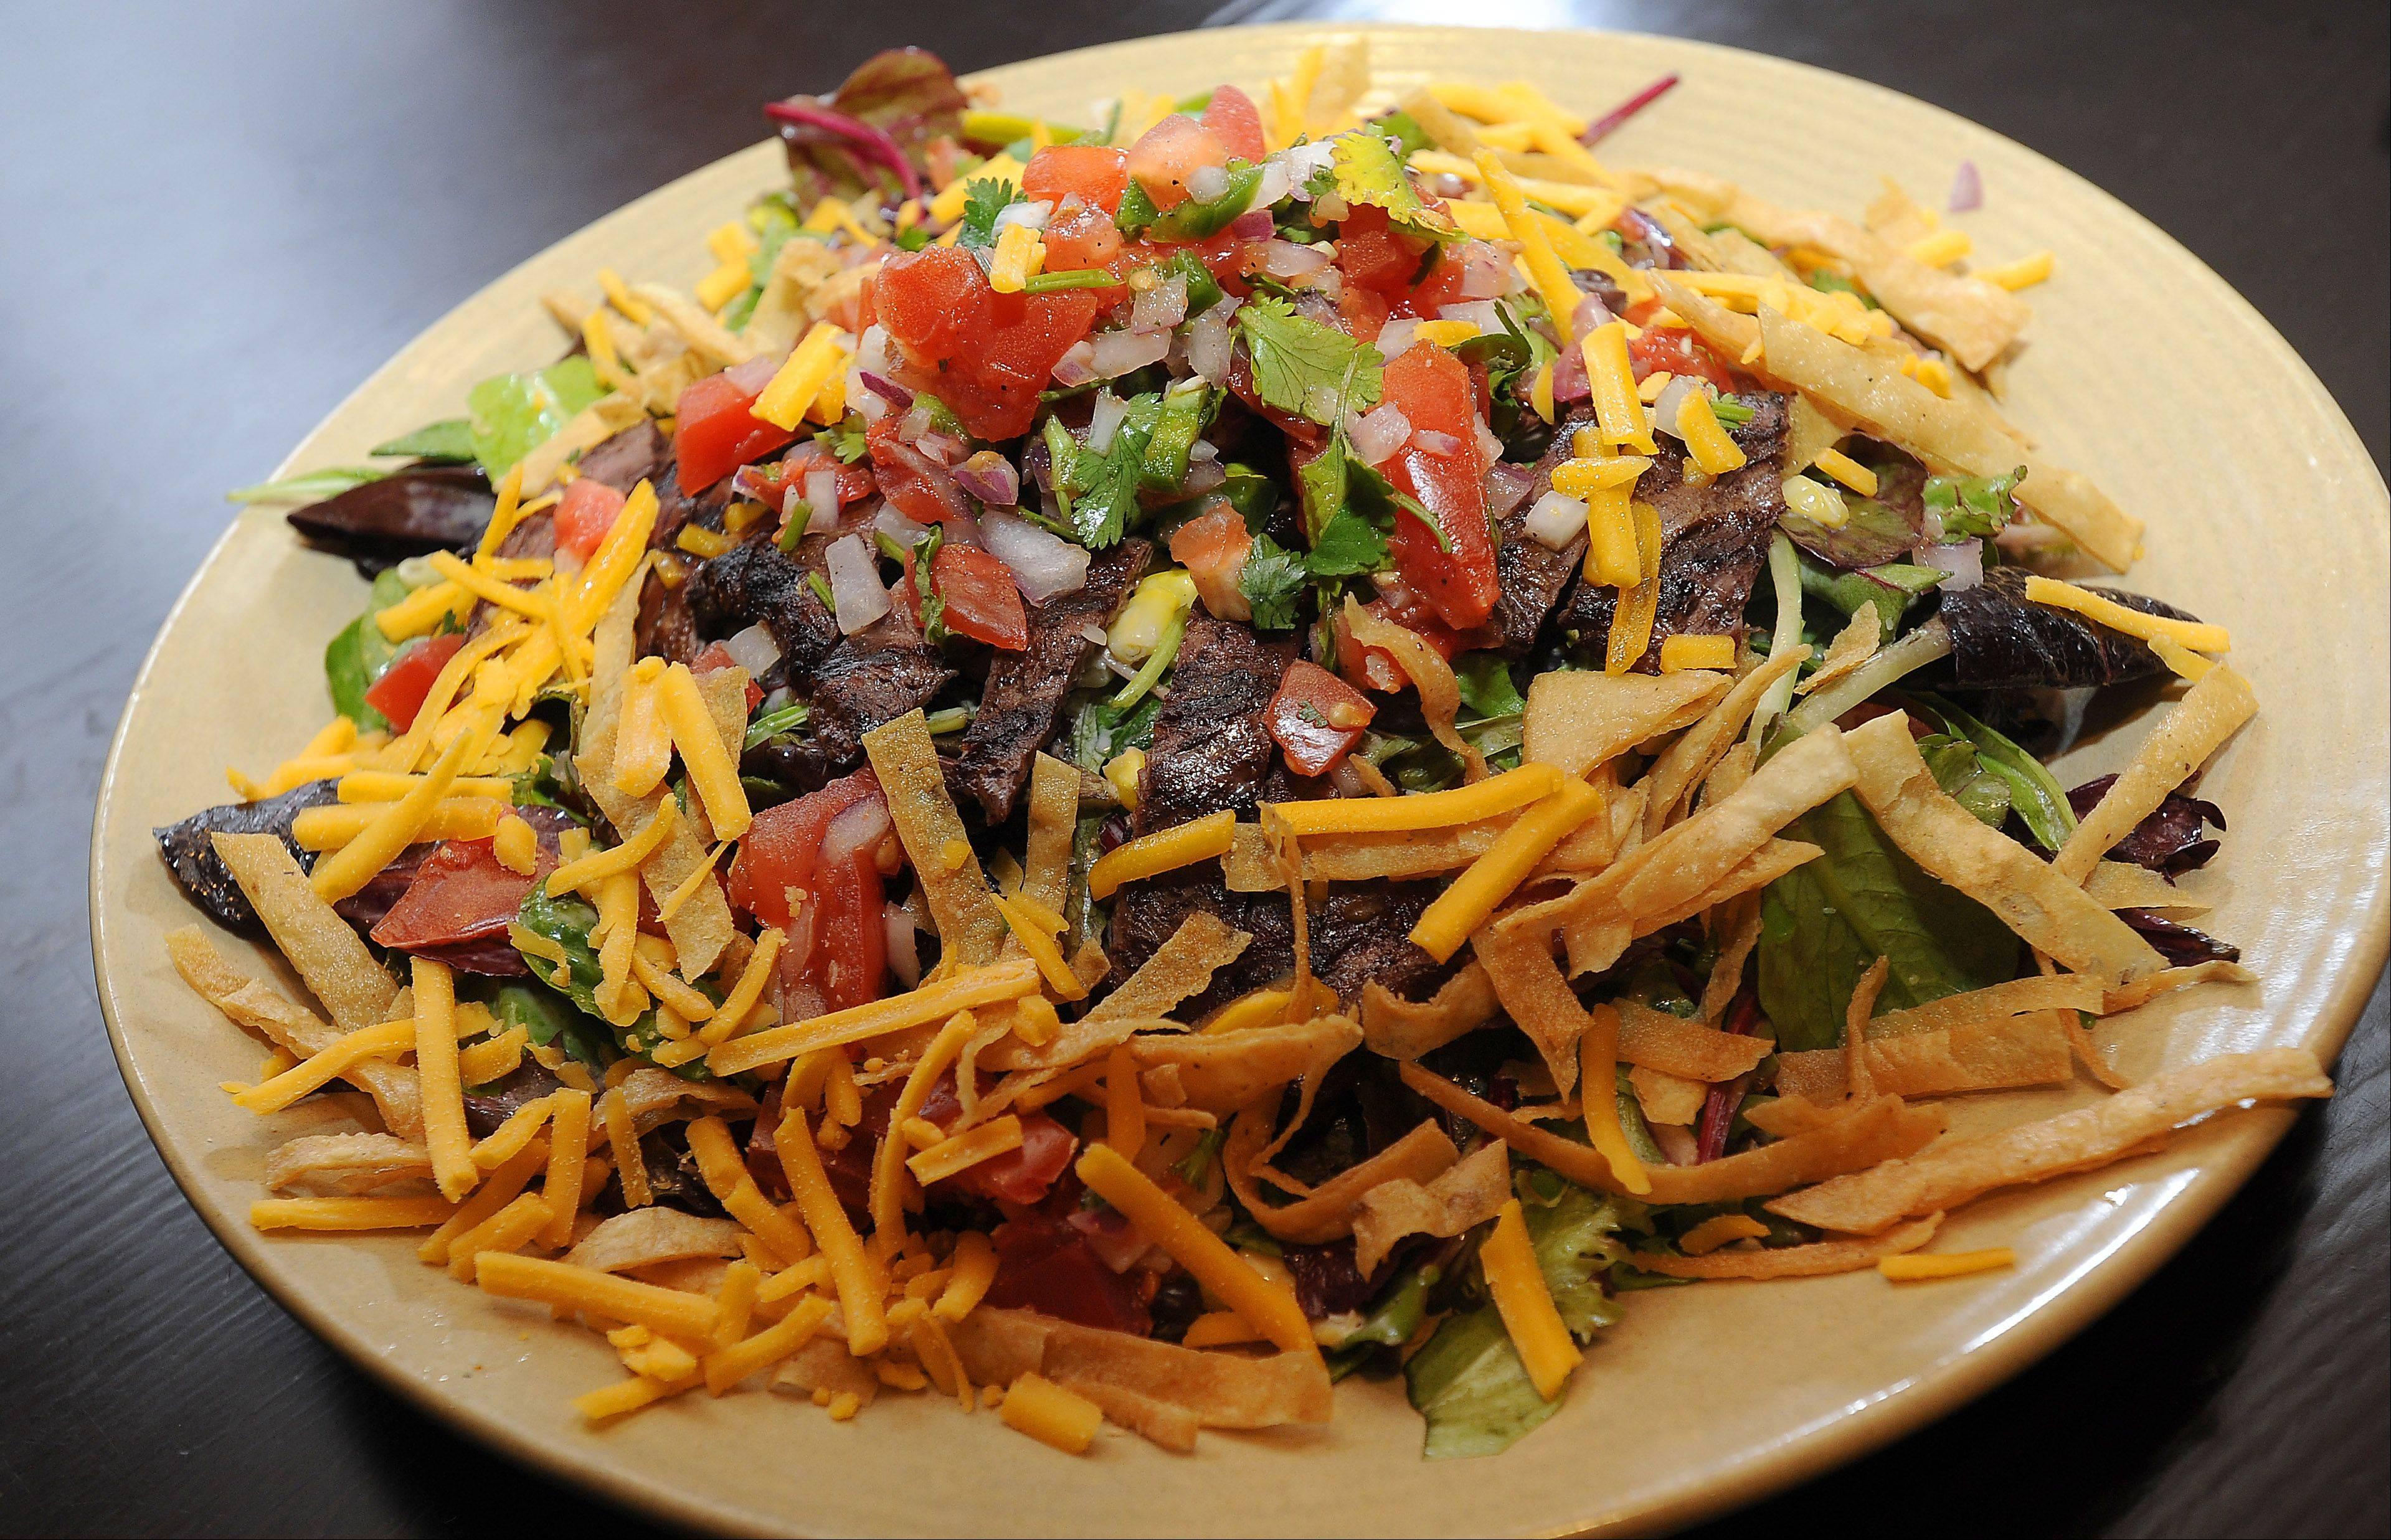 The Southwest steak salad is one of many menu options at McMae's Tavern & Grill in Bartlett.